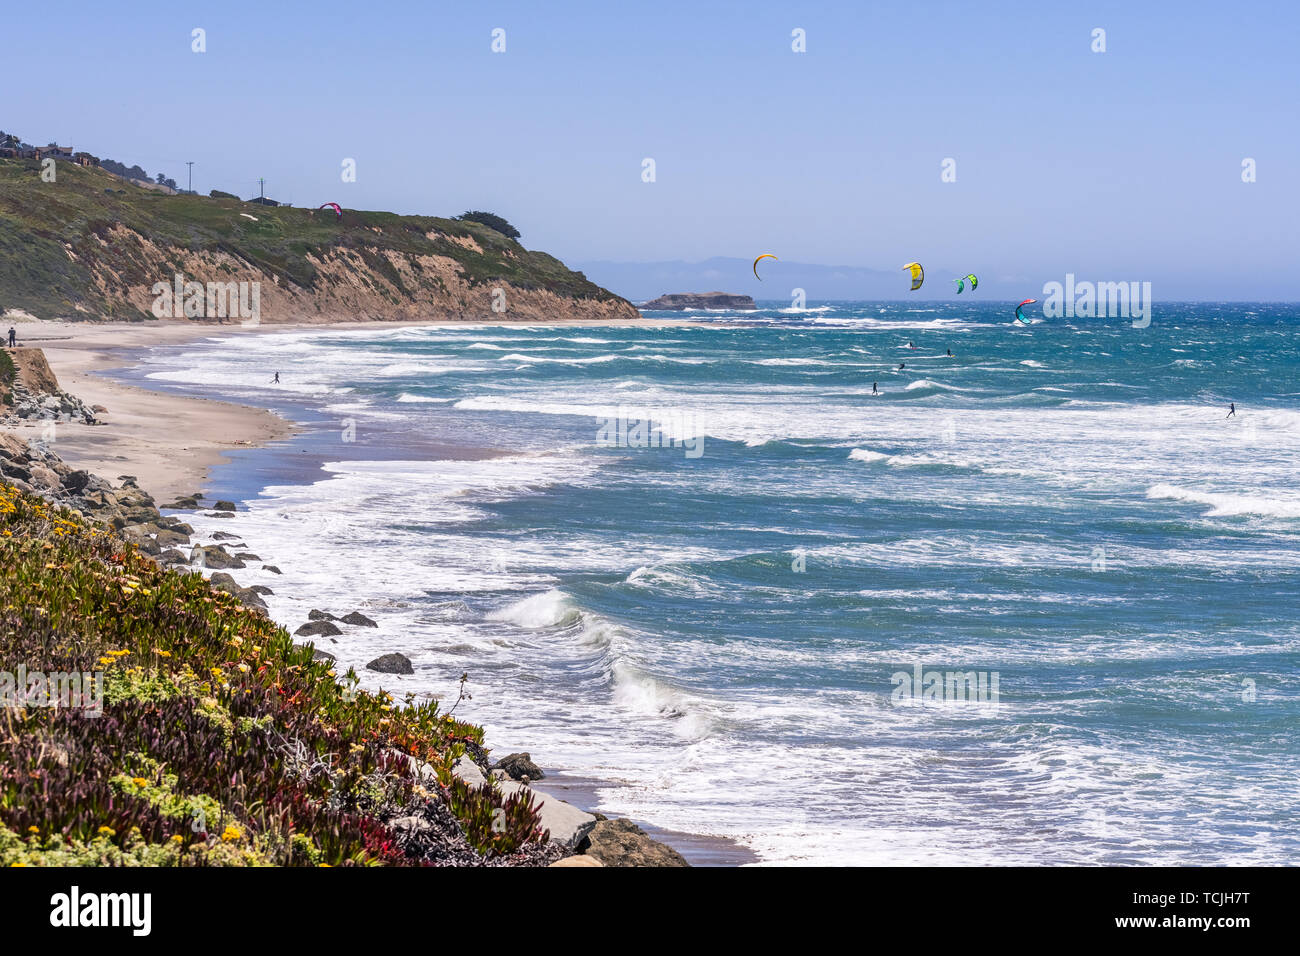 The Pacific Ocean coastline close to Santa Cruz, California; unidentified people windsurfing on a sunny day at Waddell Beach - Stock Image